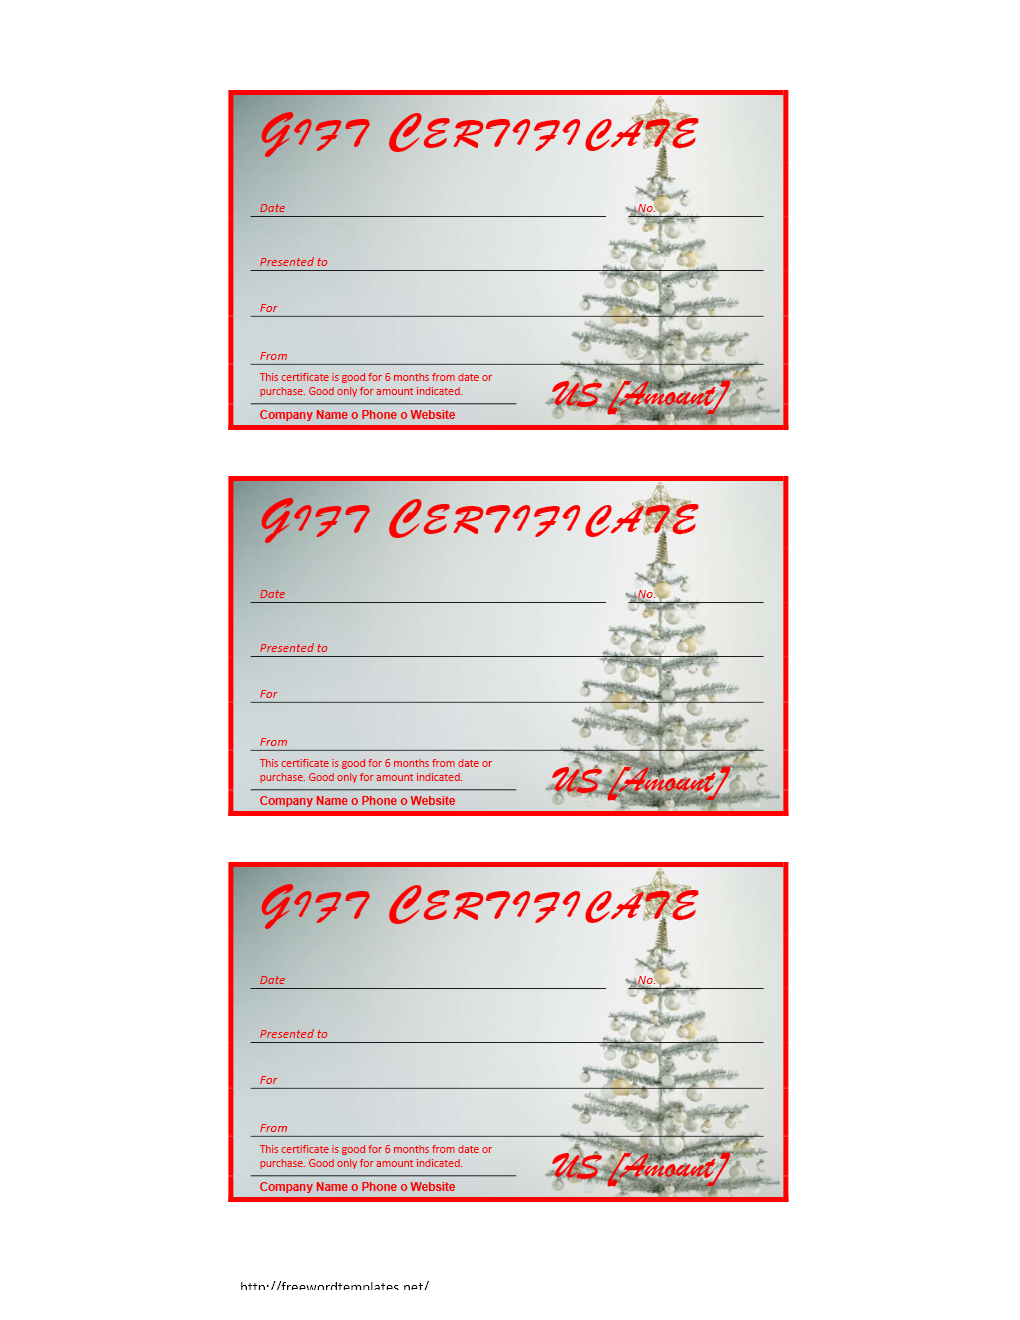 Certificate Wordtemplates Net Christmas Gift Certificate. Printable  Birthday Certificate Templates